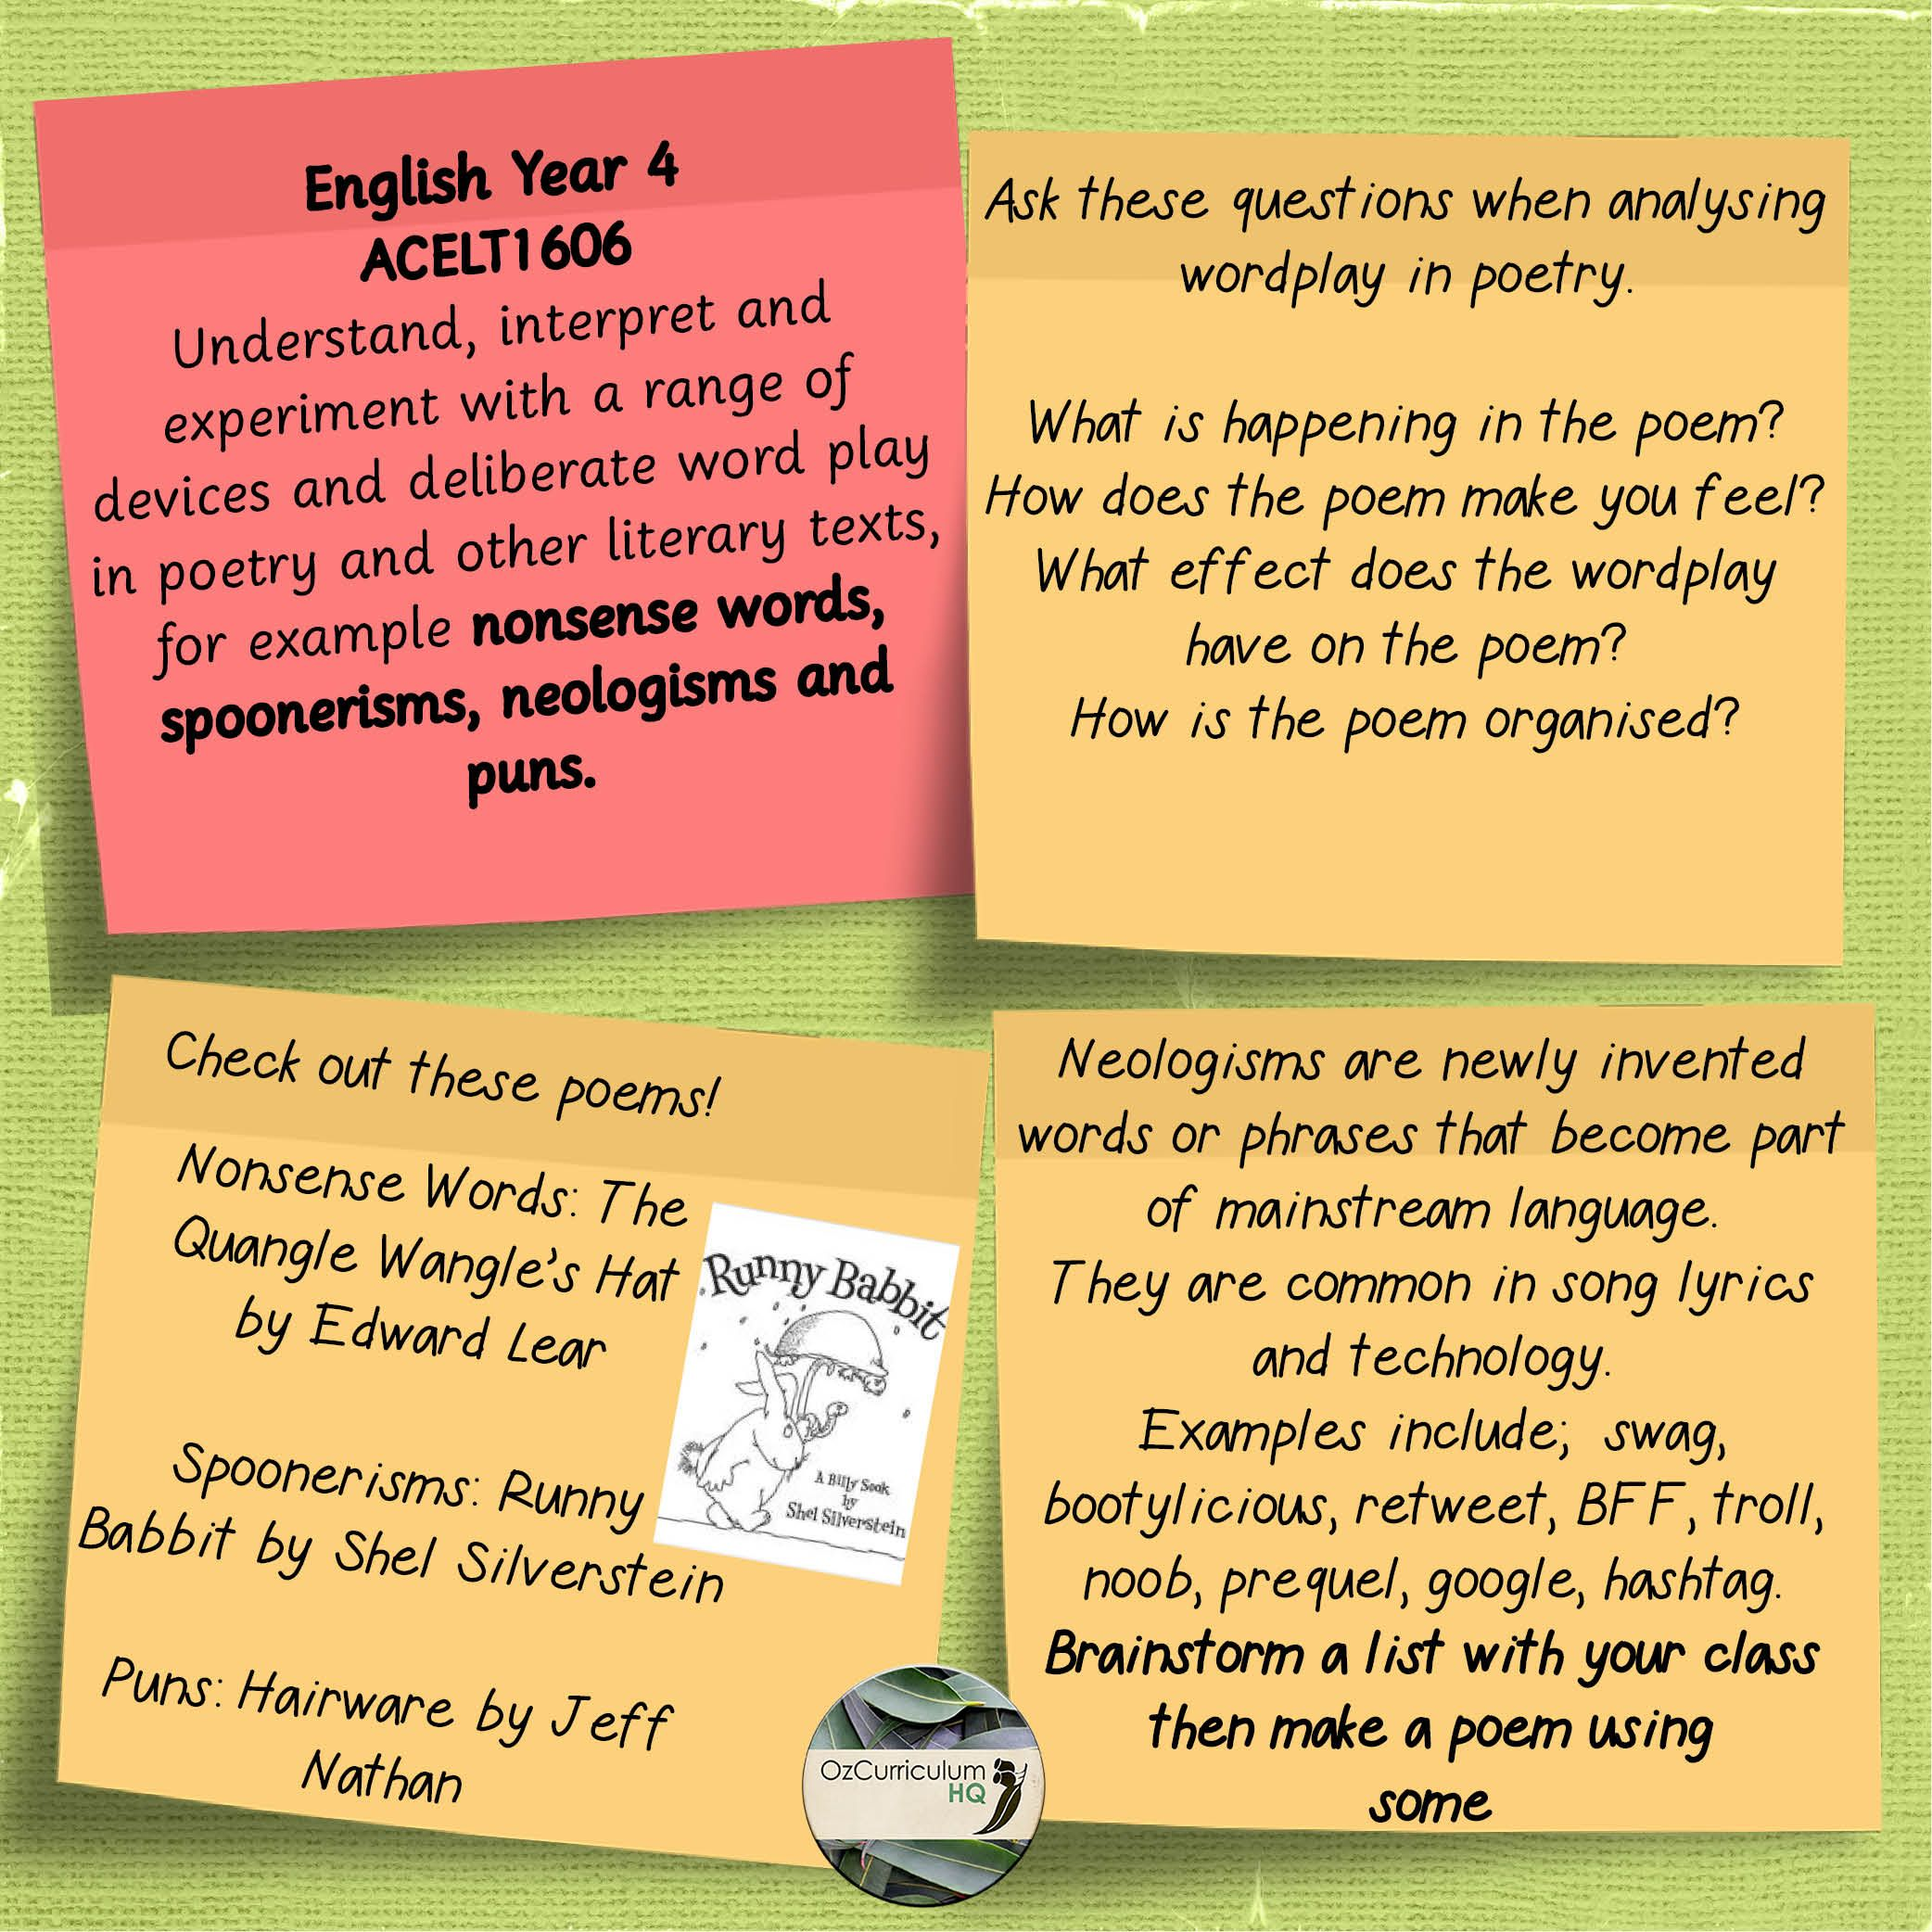 English Year 4 Acelt Nonsense Words Spoonerisms Neologisms And Puns